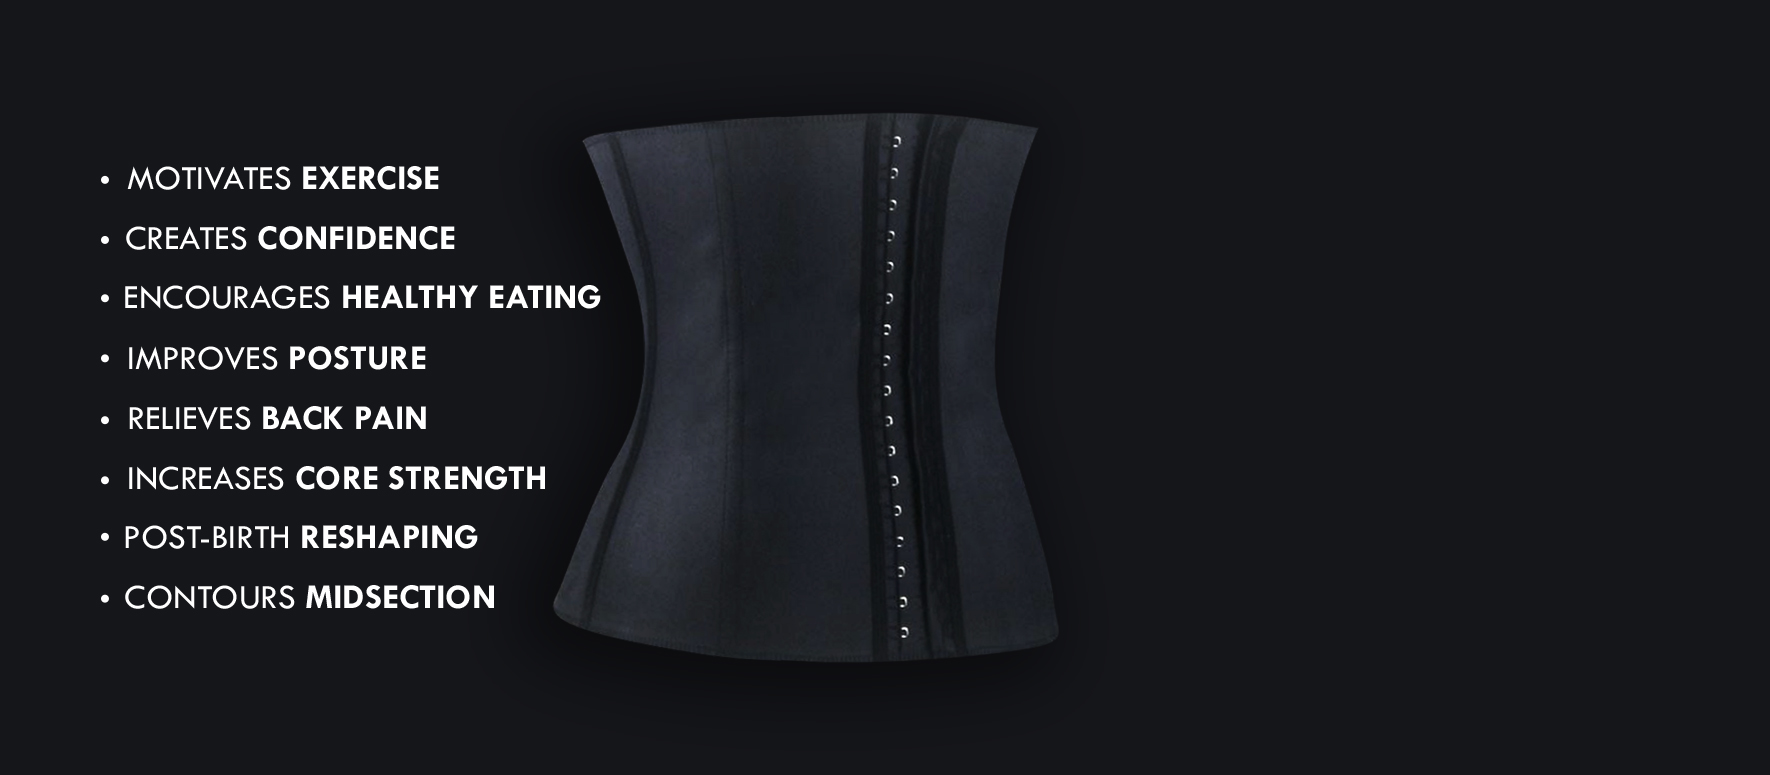 Waist trainer benefits